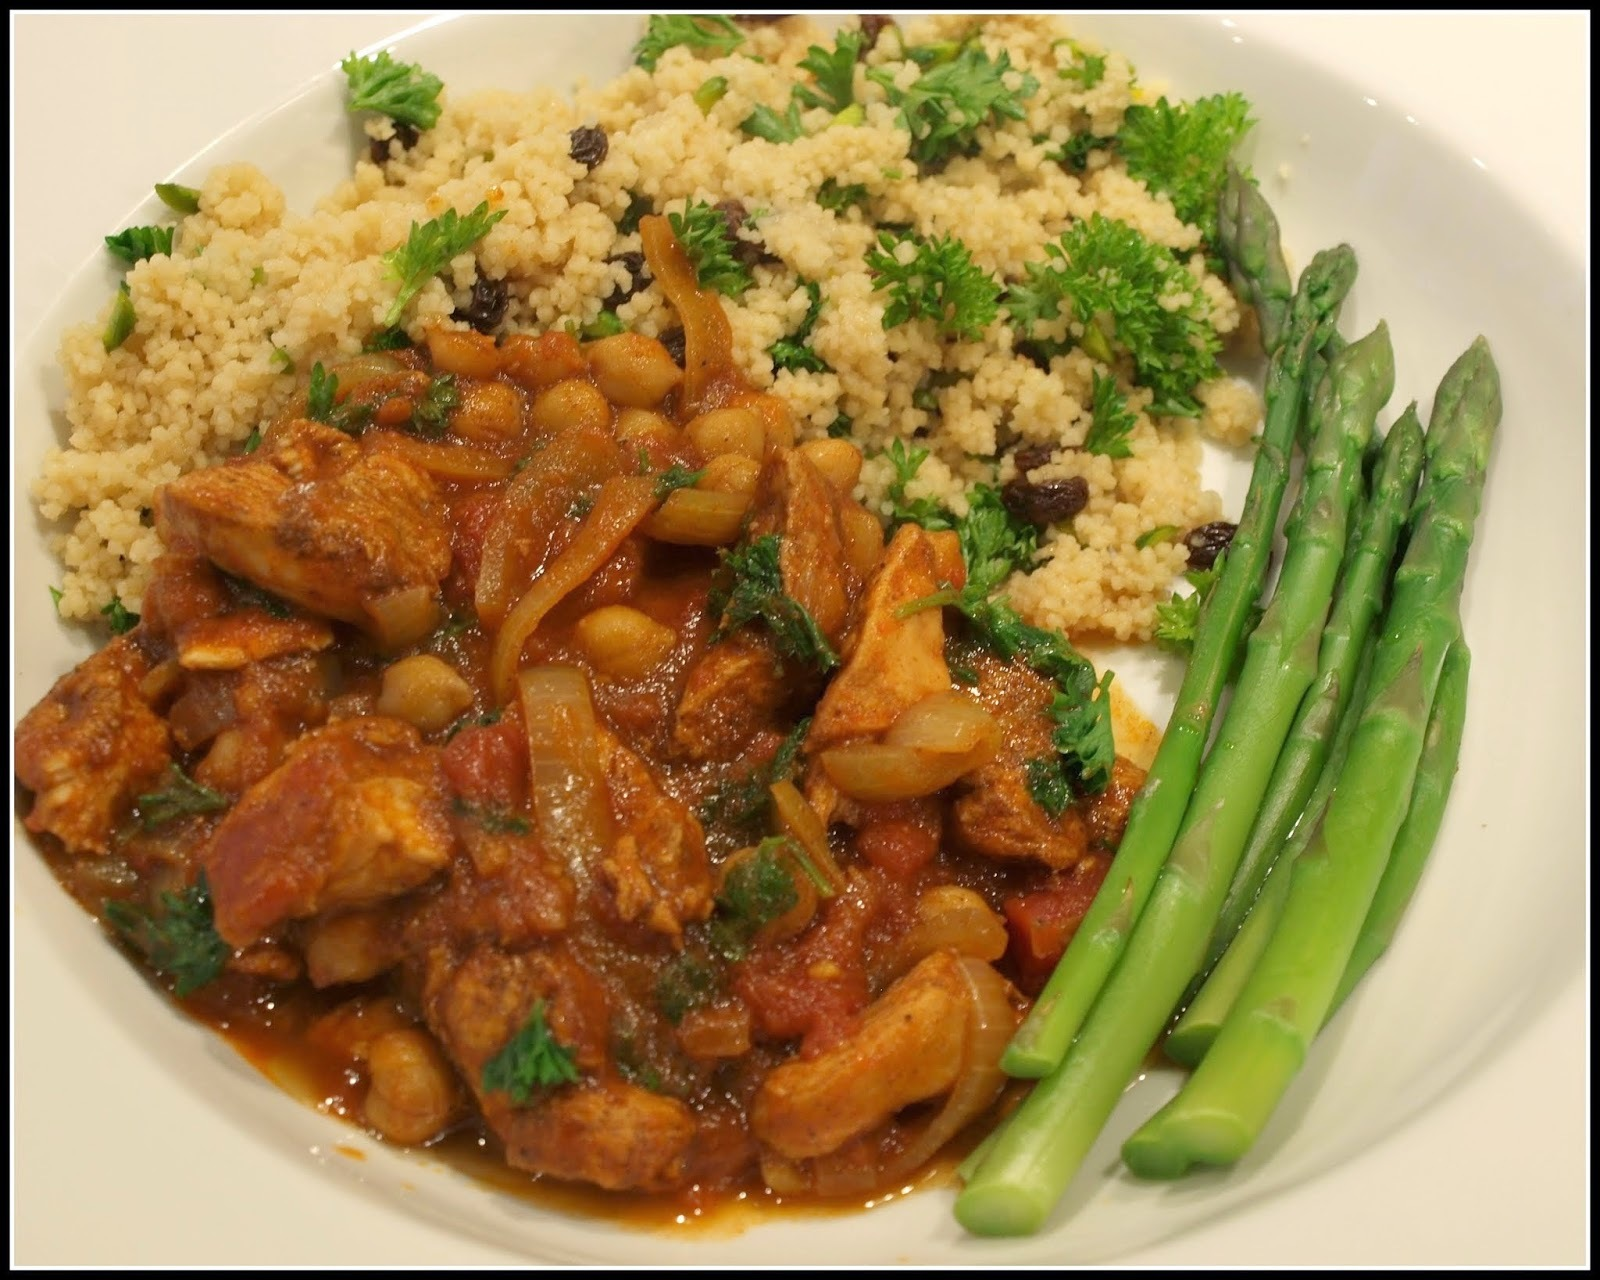 Spicy chicken tagine with couscous